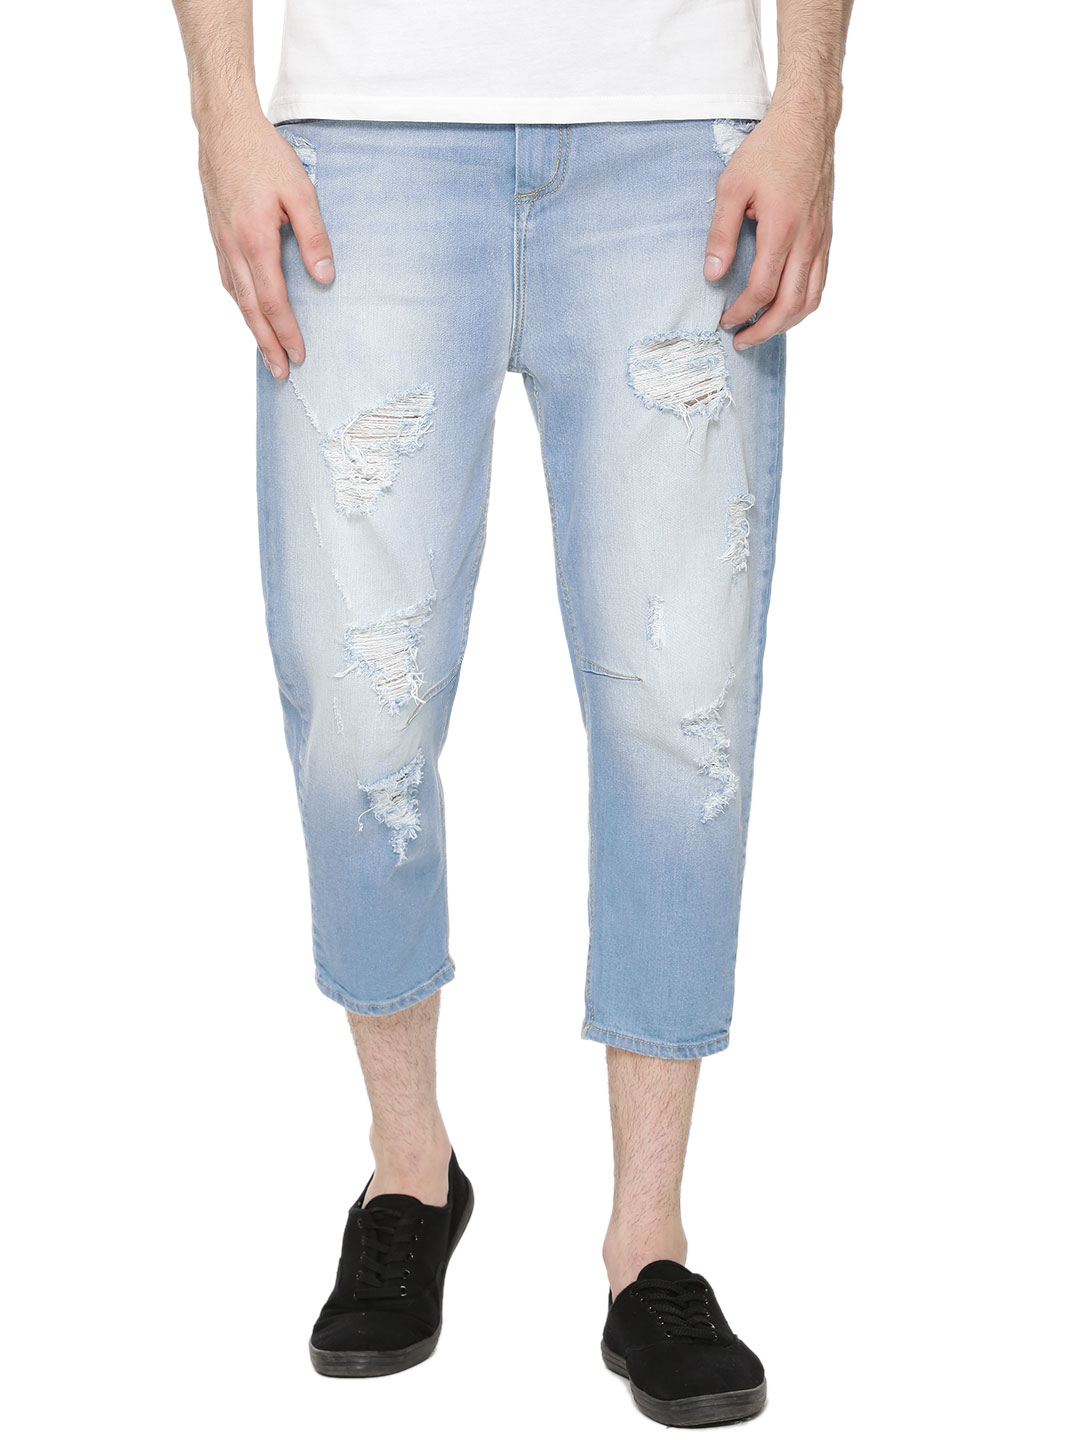 Adamo London Drop Crotch Jeans...